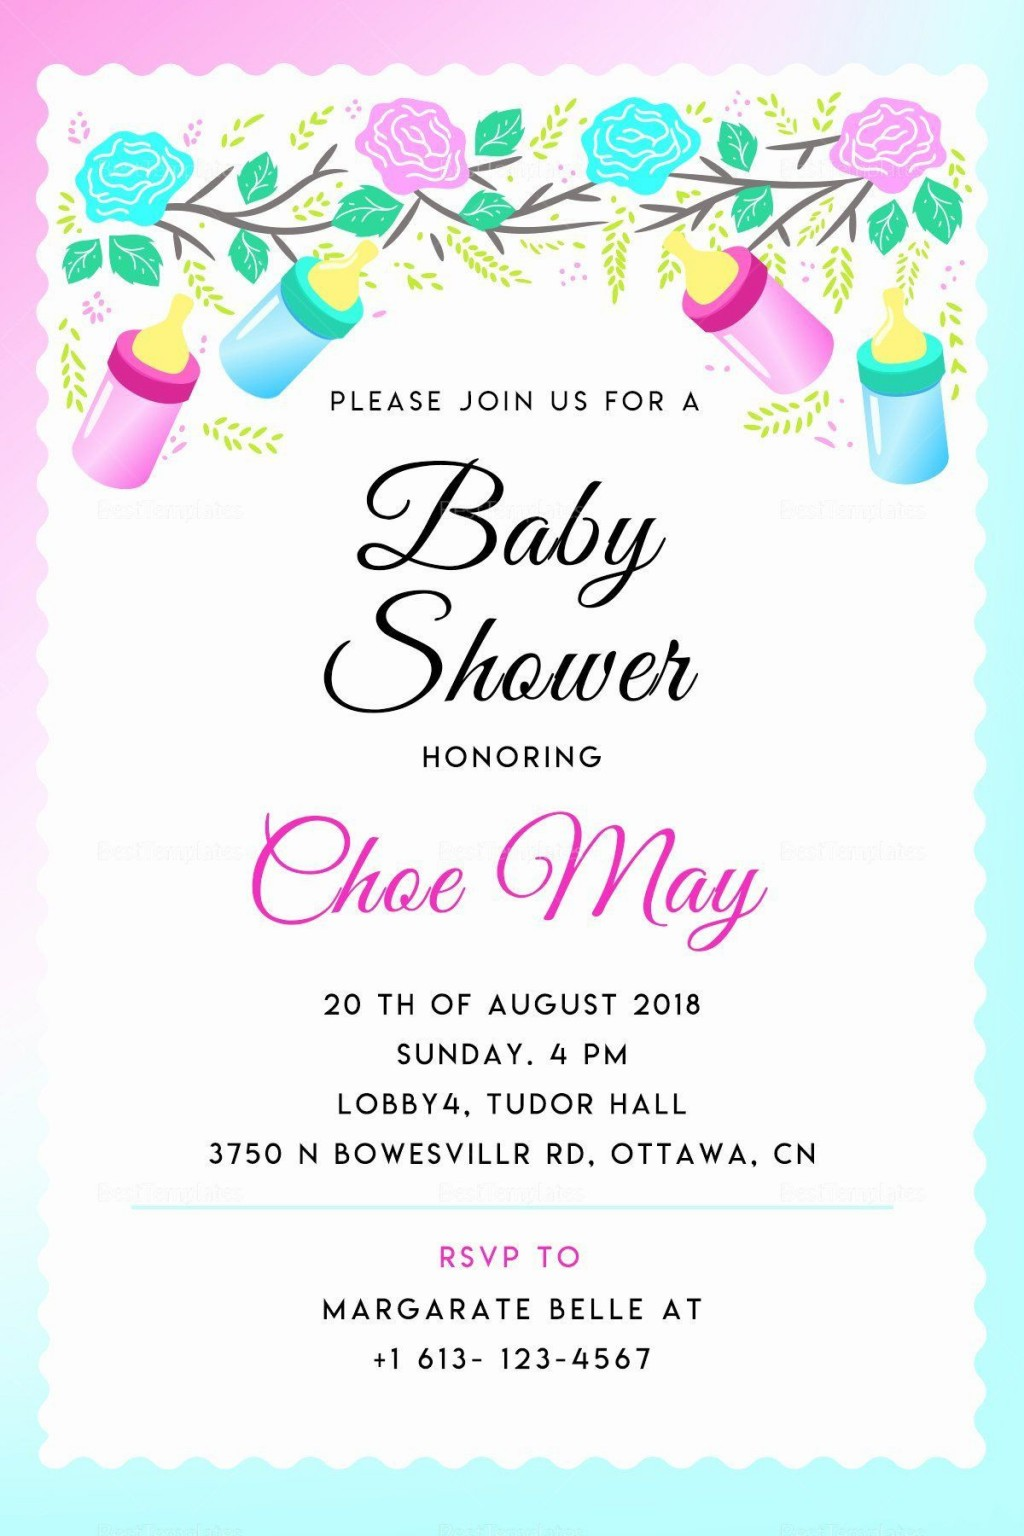 002 Frightening Baby Shower Invite Template Word Picture  Invitation Wording Sample Free ExampleLarge